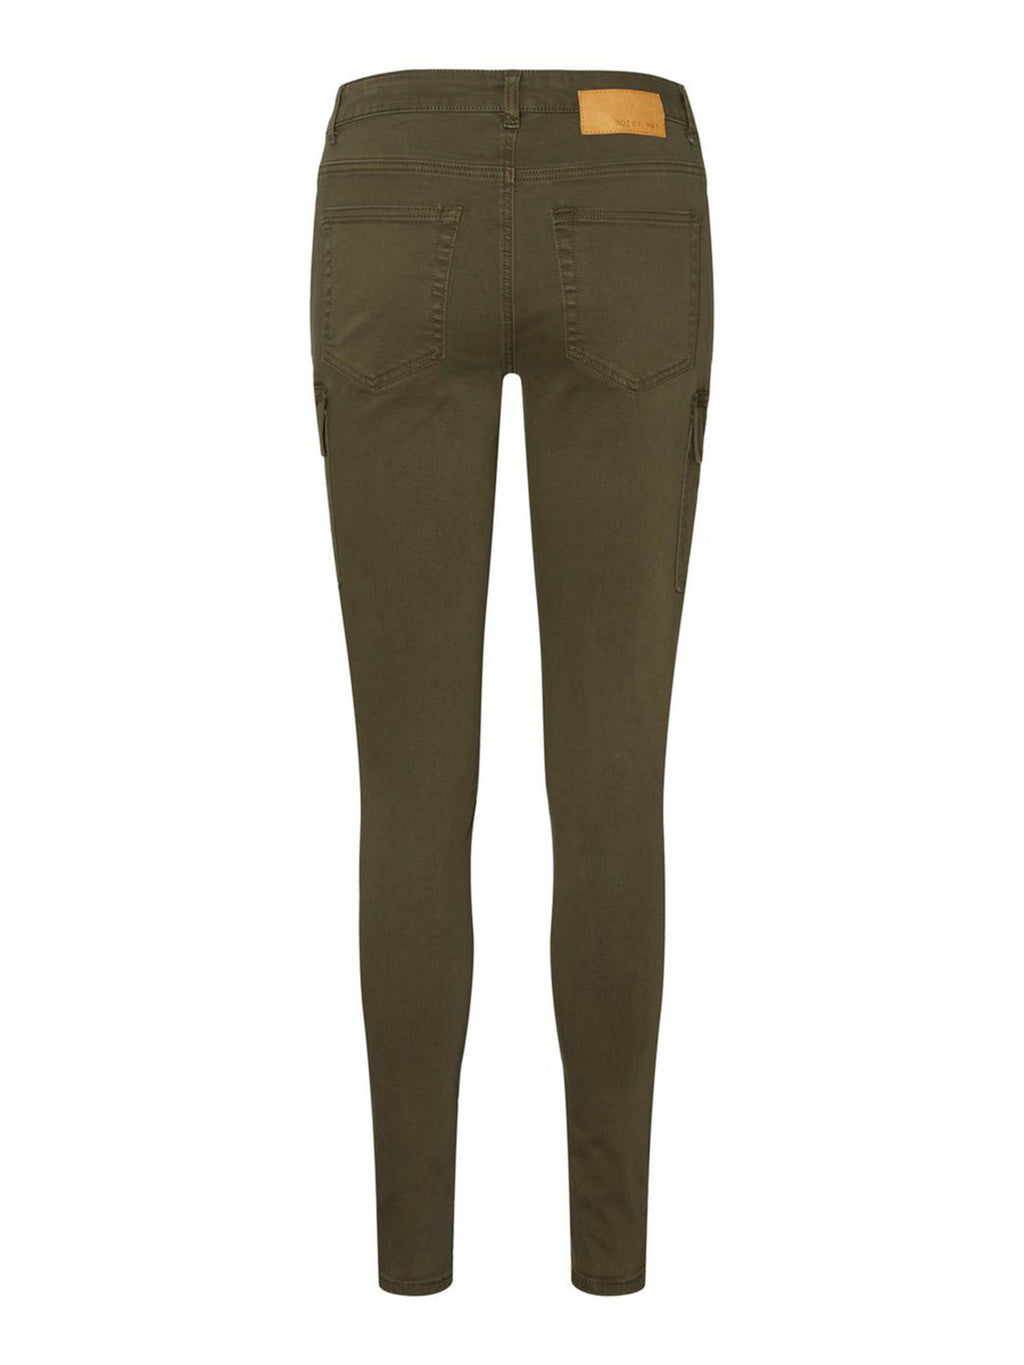 Noisy May Lucy Utility Trousers in khaki